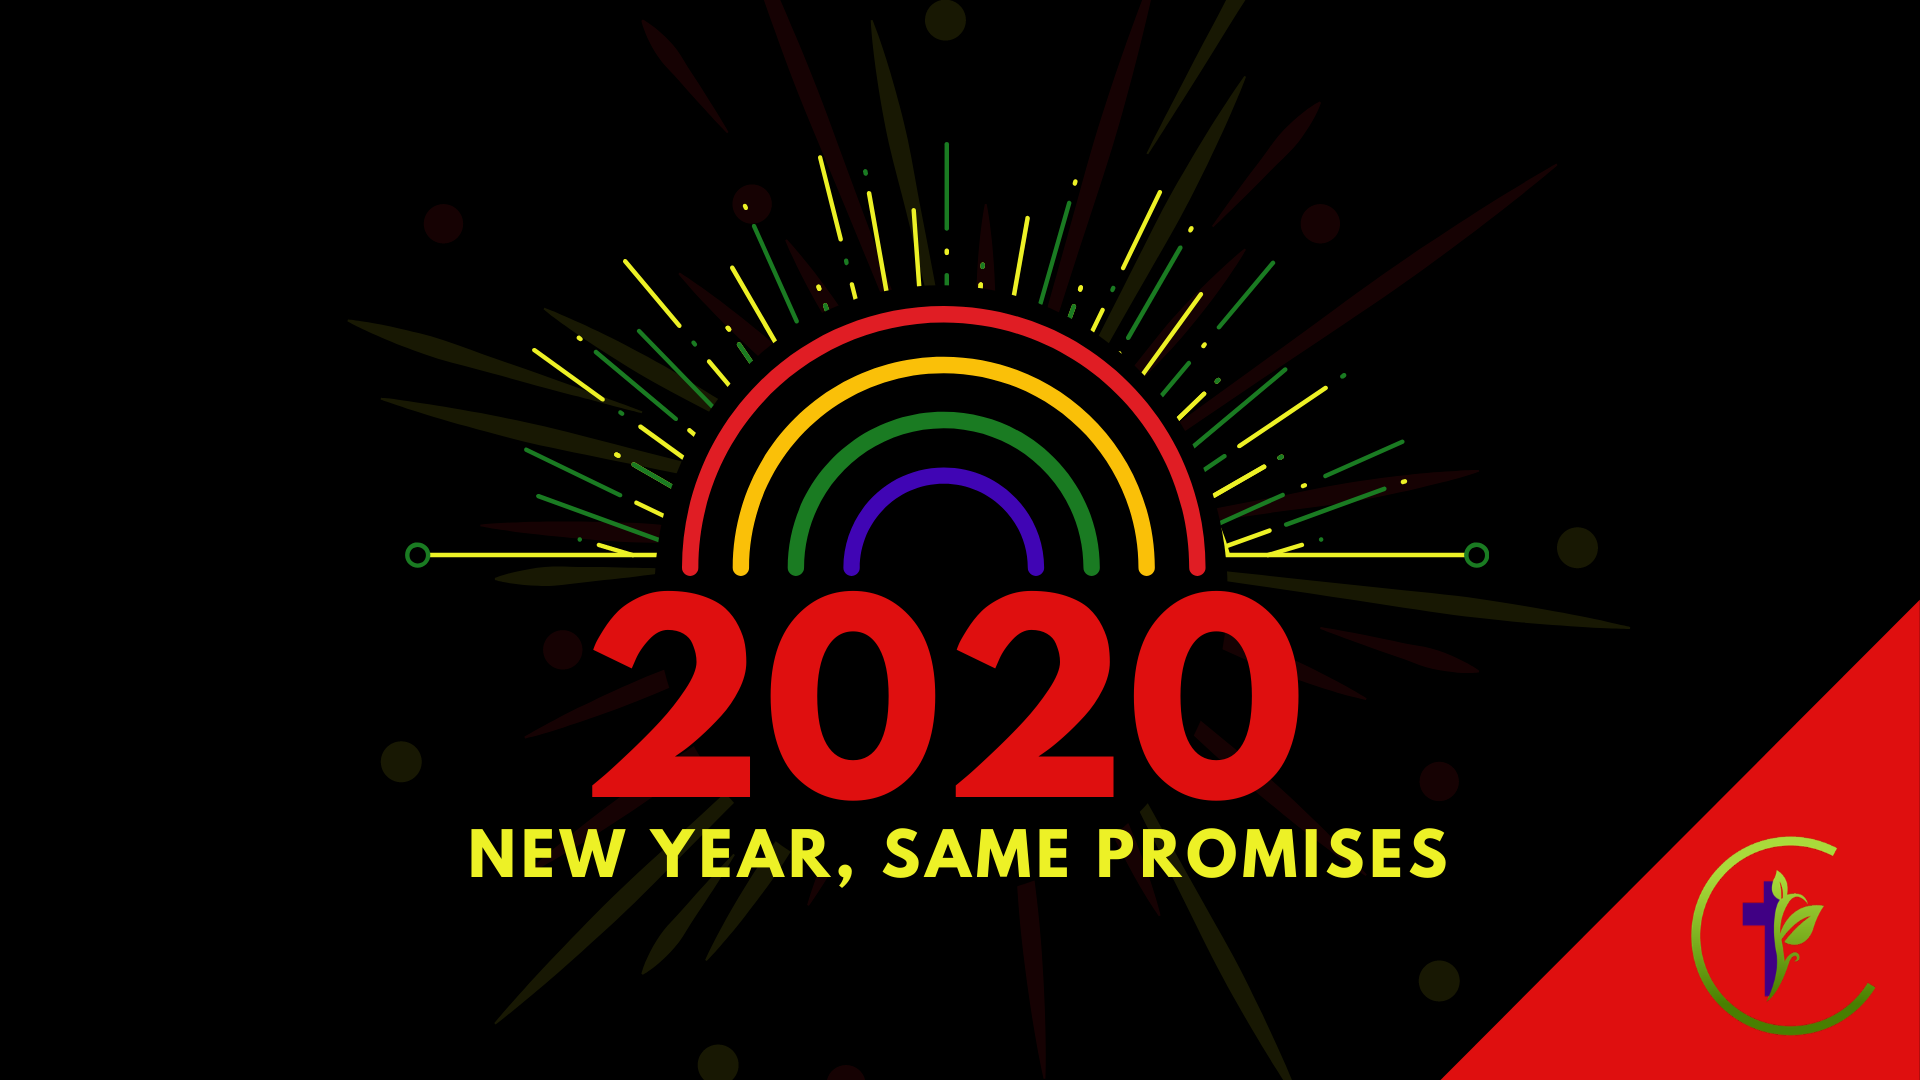 New Year New Promises